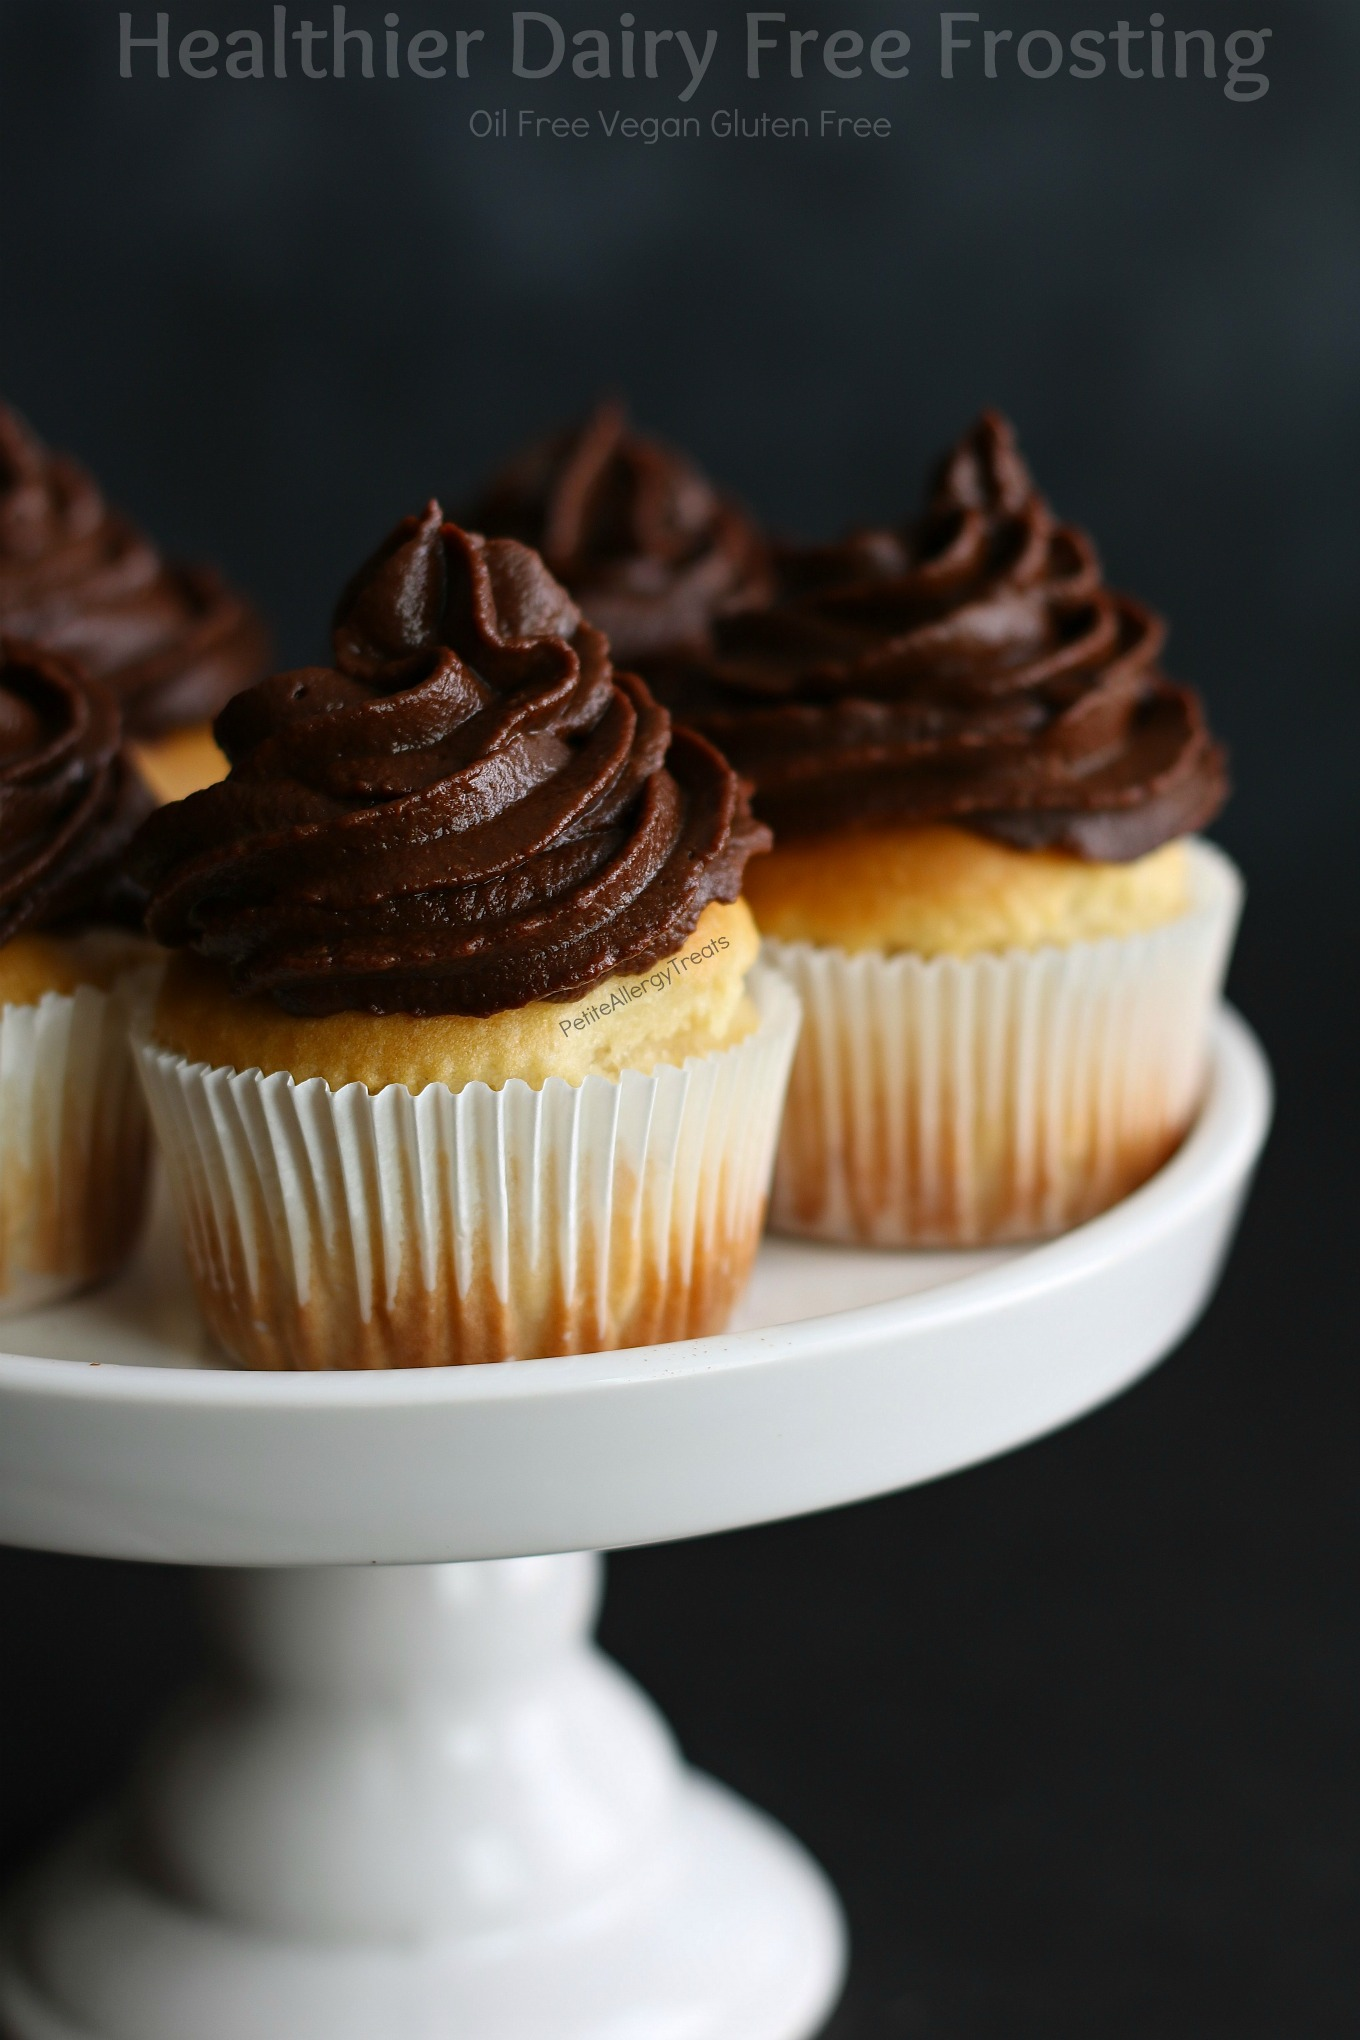 Healthy Dairy Free Frosting Recipe Vegan- Smooth oil free chocolate frosting. Easy no mixer needed food allergy friendly recipe